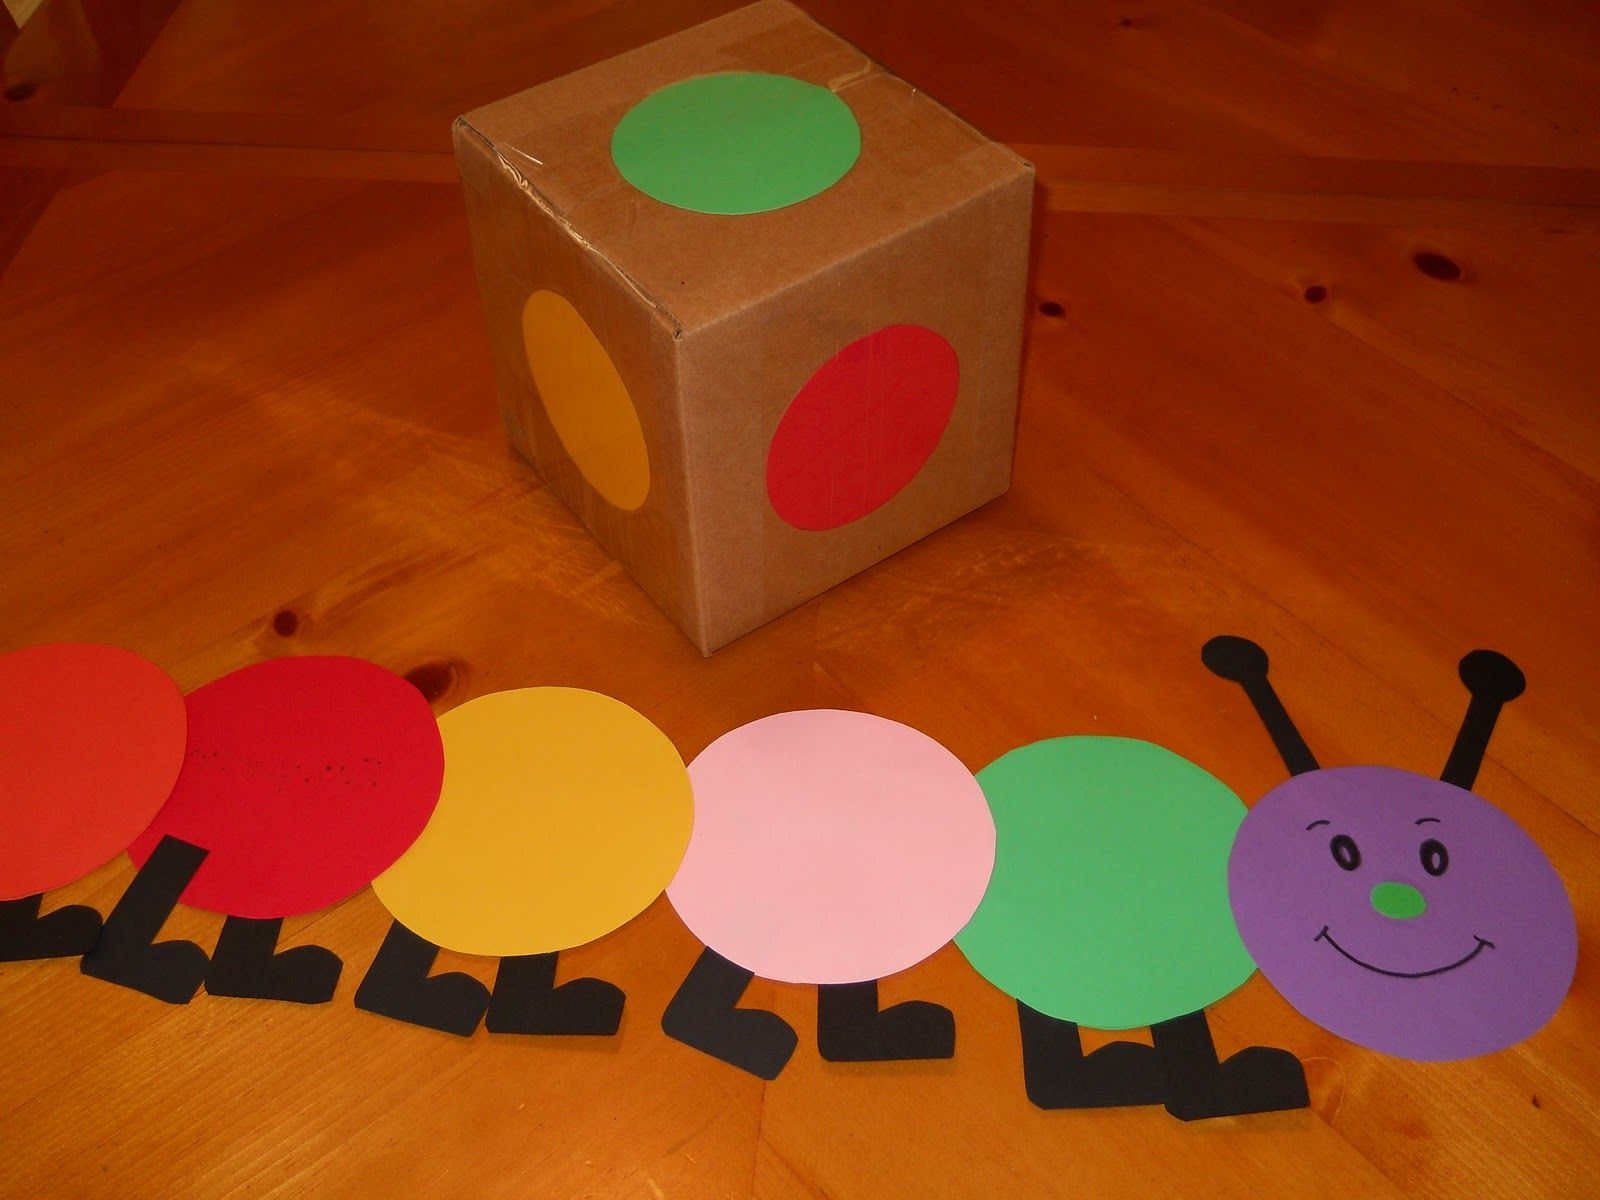 Preschool games for learning colors - Learning And Teaching With Preschoolers Caterpillar Transition Game